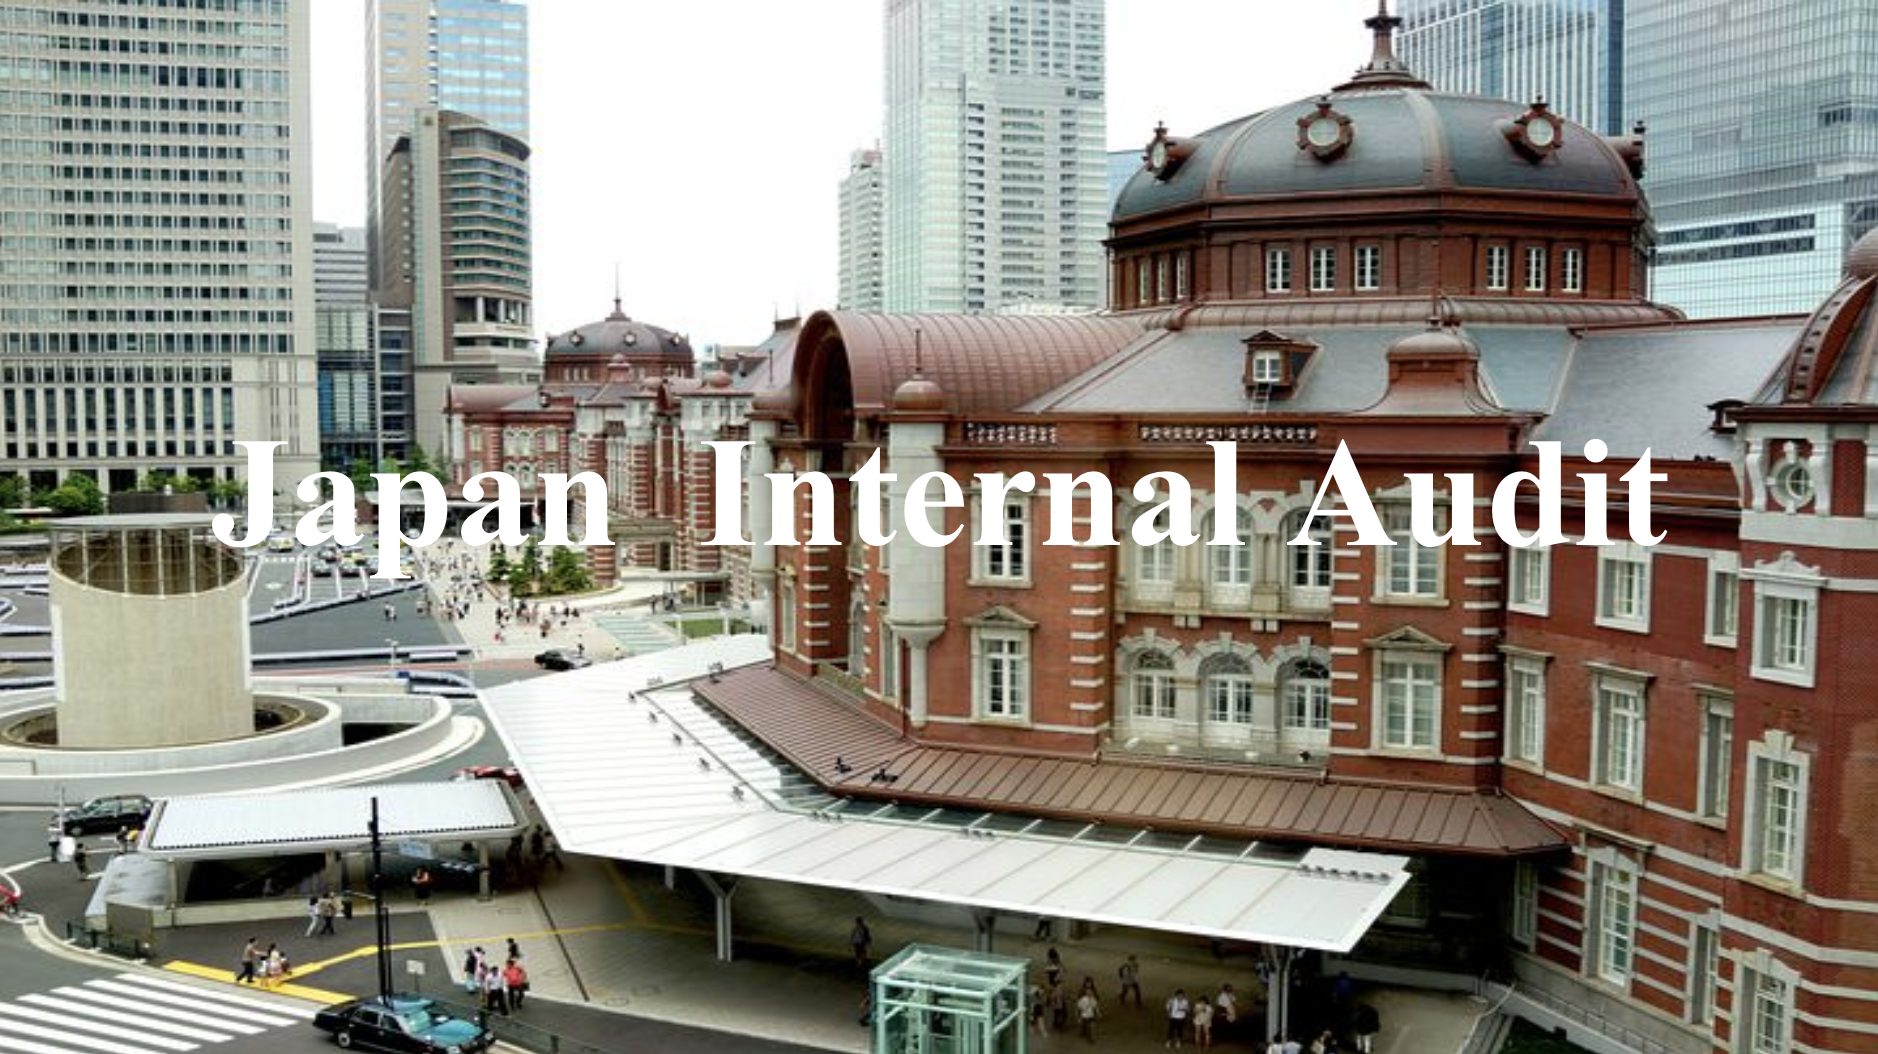 Japan Internal Audit